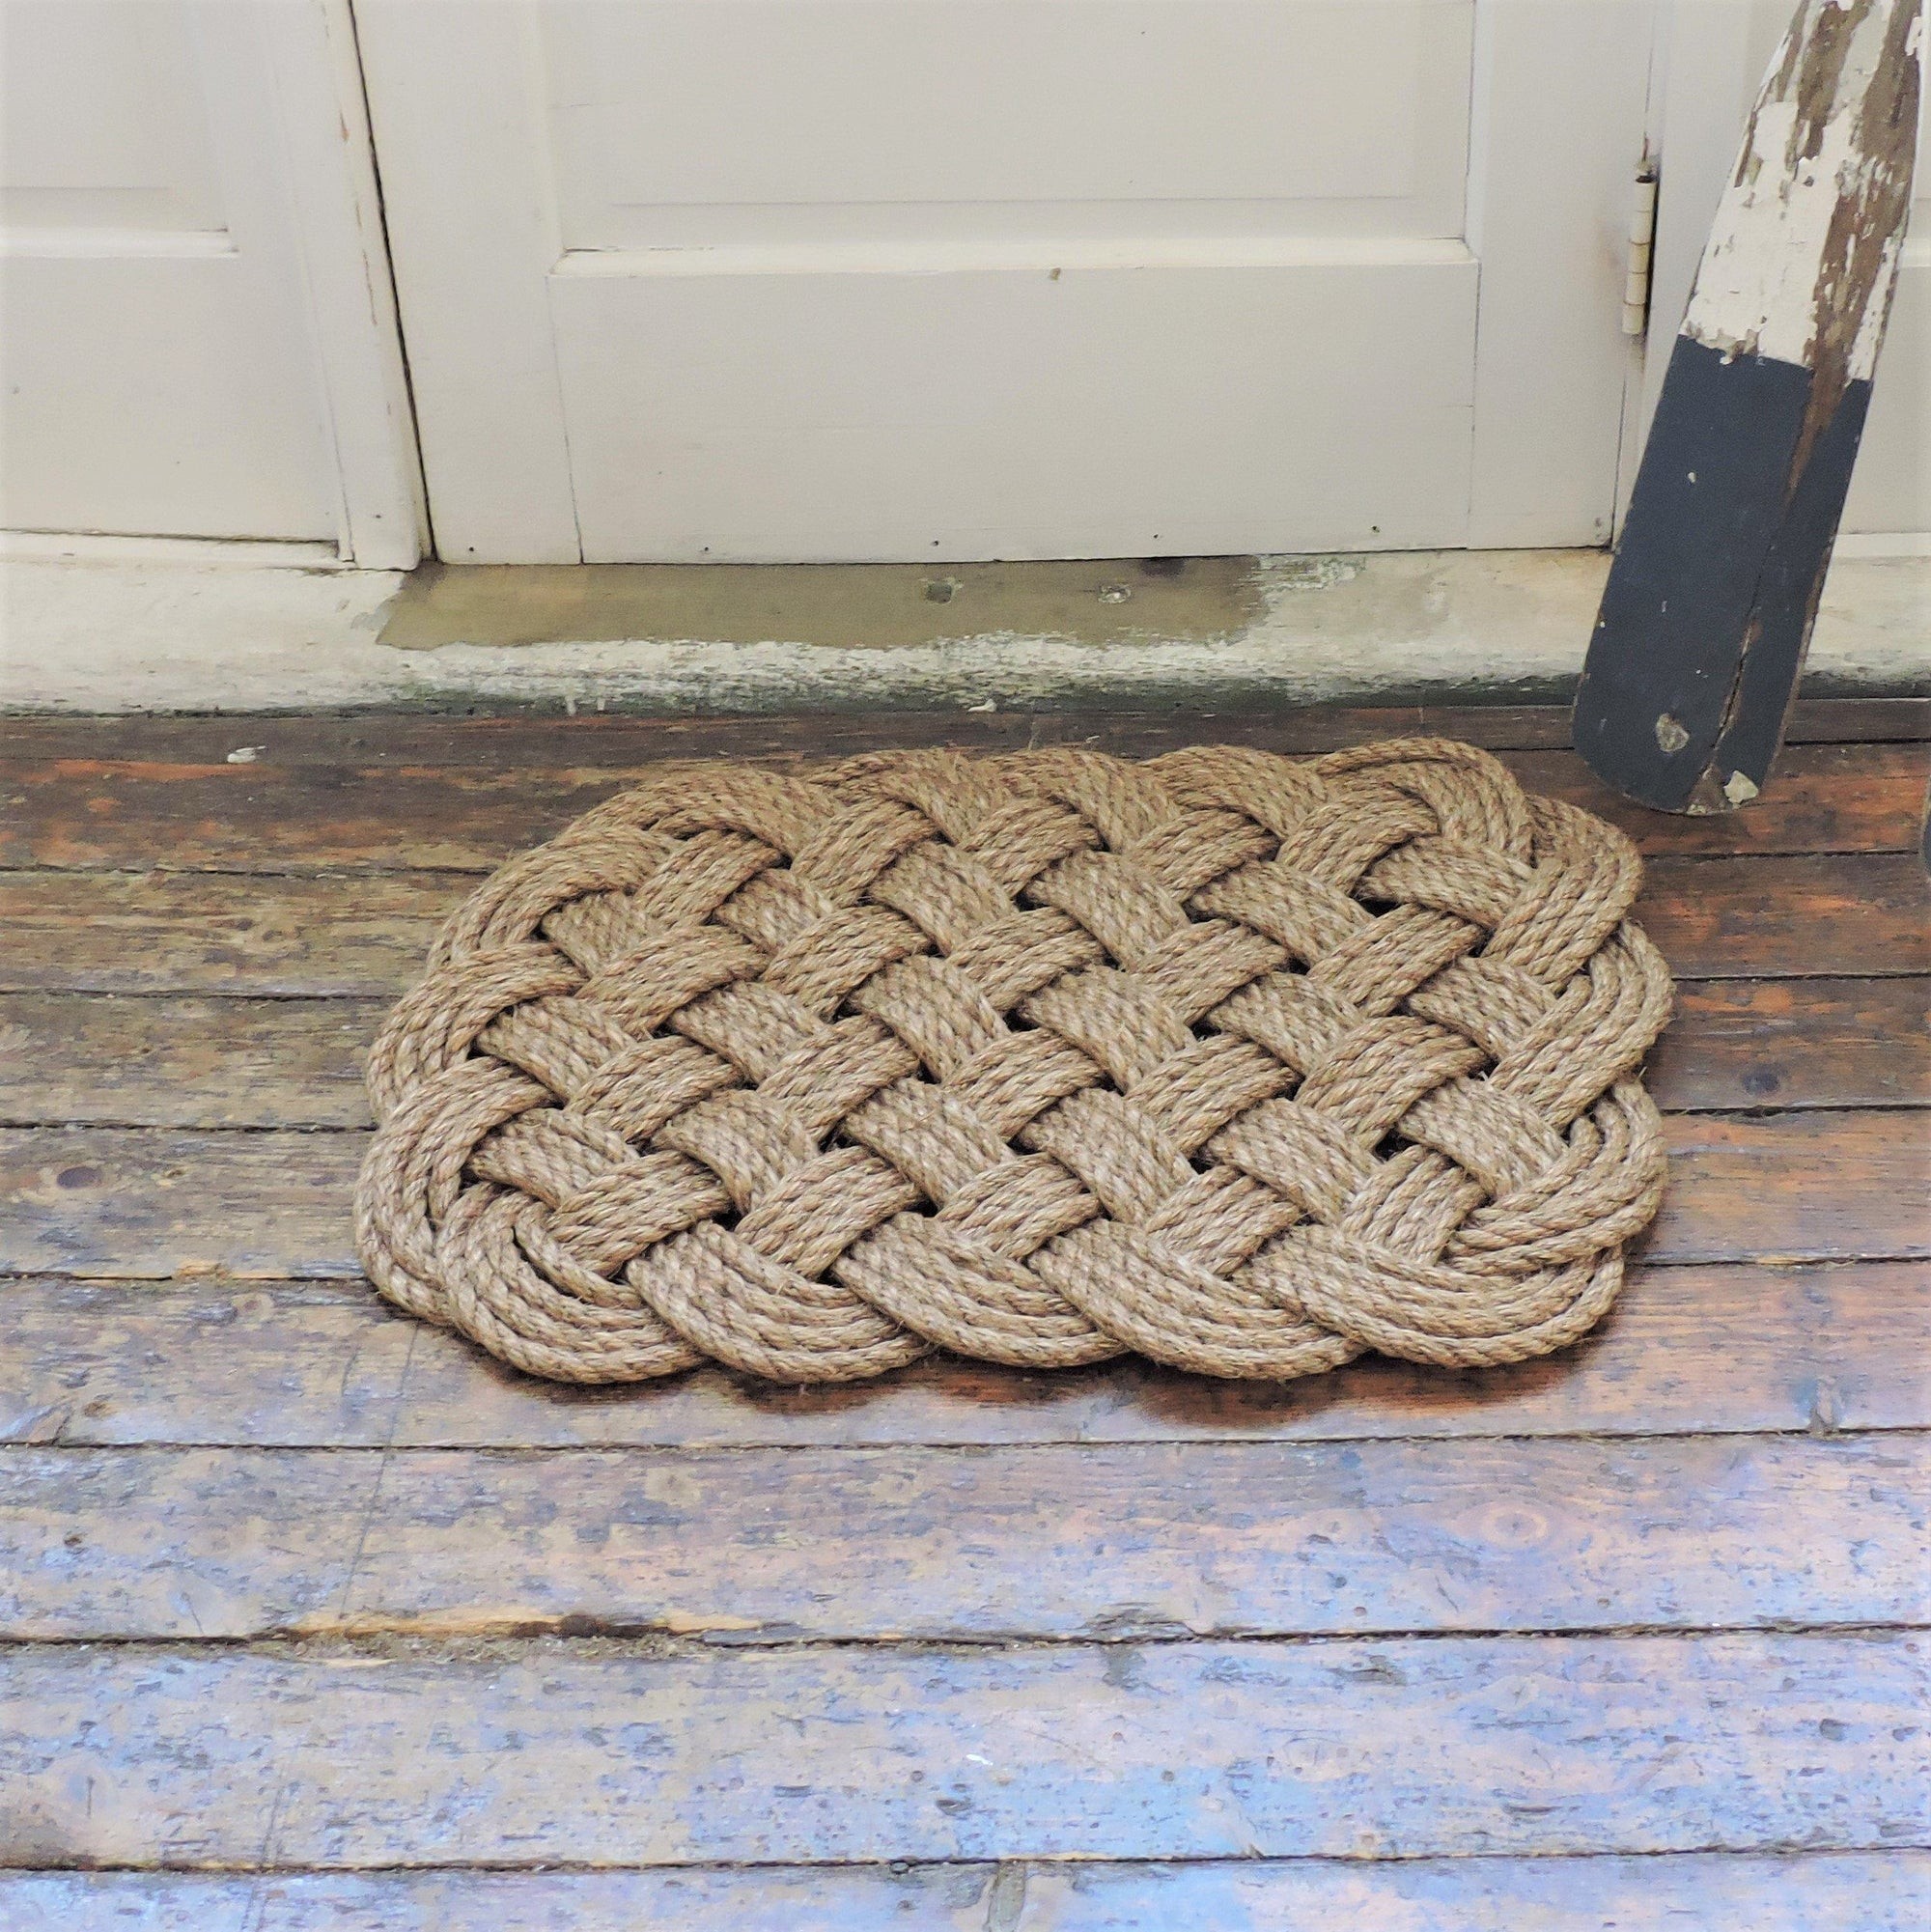 Nautical Knot Woven Nautical Entry Rug, Square Door Mat handmade at Mystic Knotwork